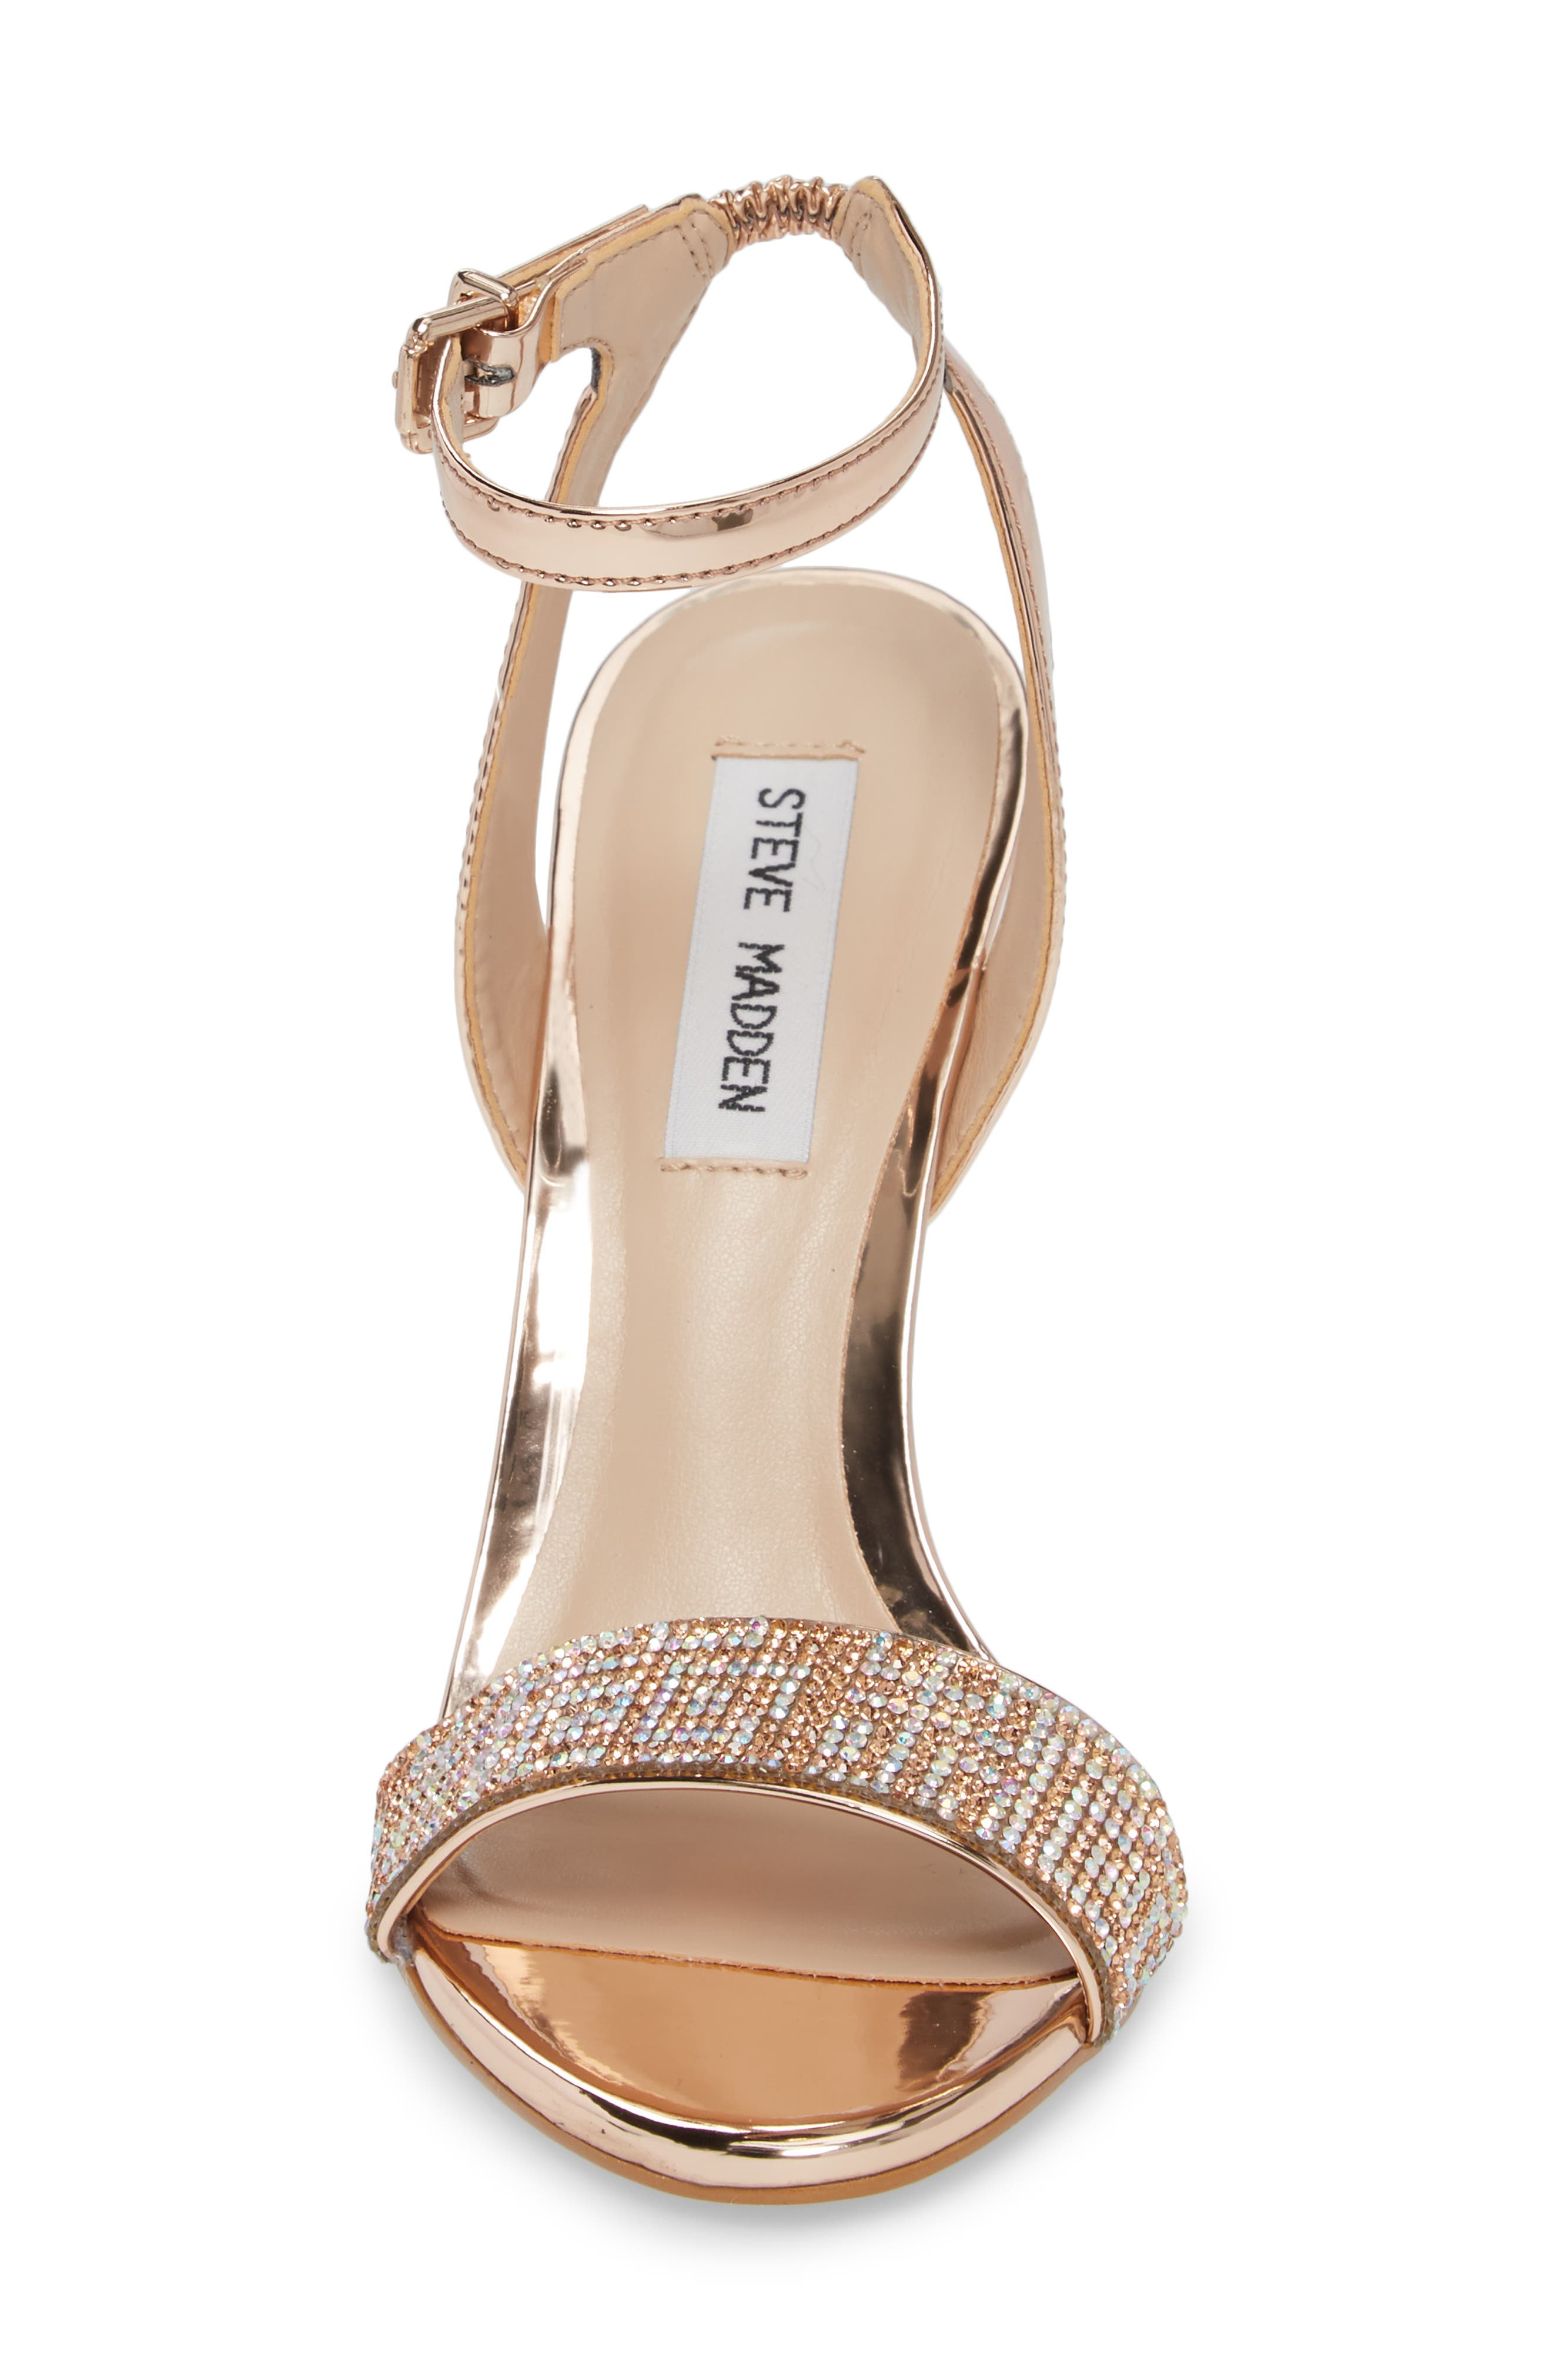 Leona Sandal,                             Alternate thumbnail 4, color,                             Rose Gold Leather